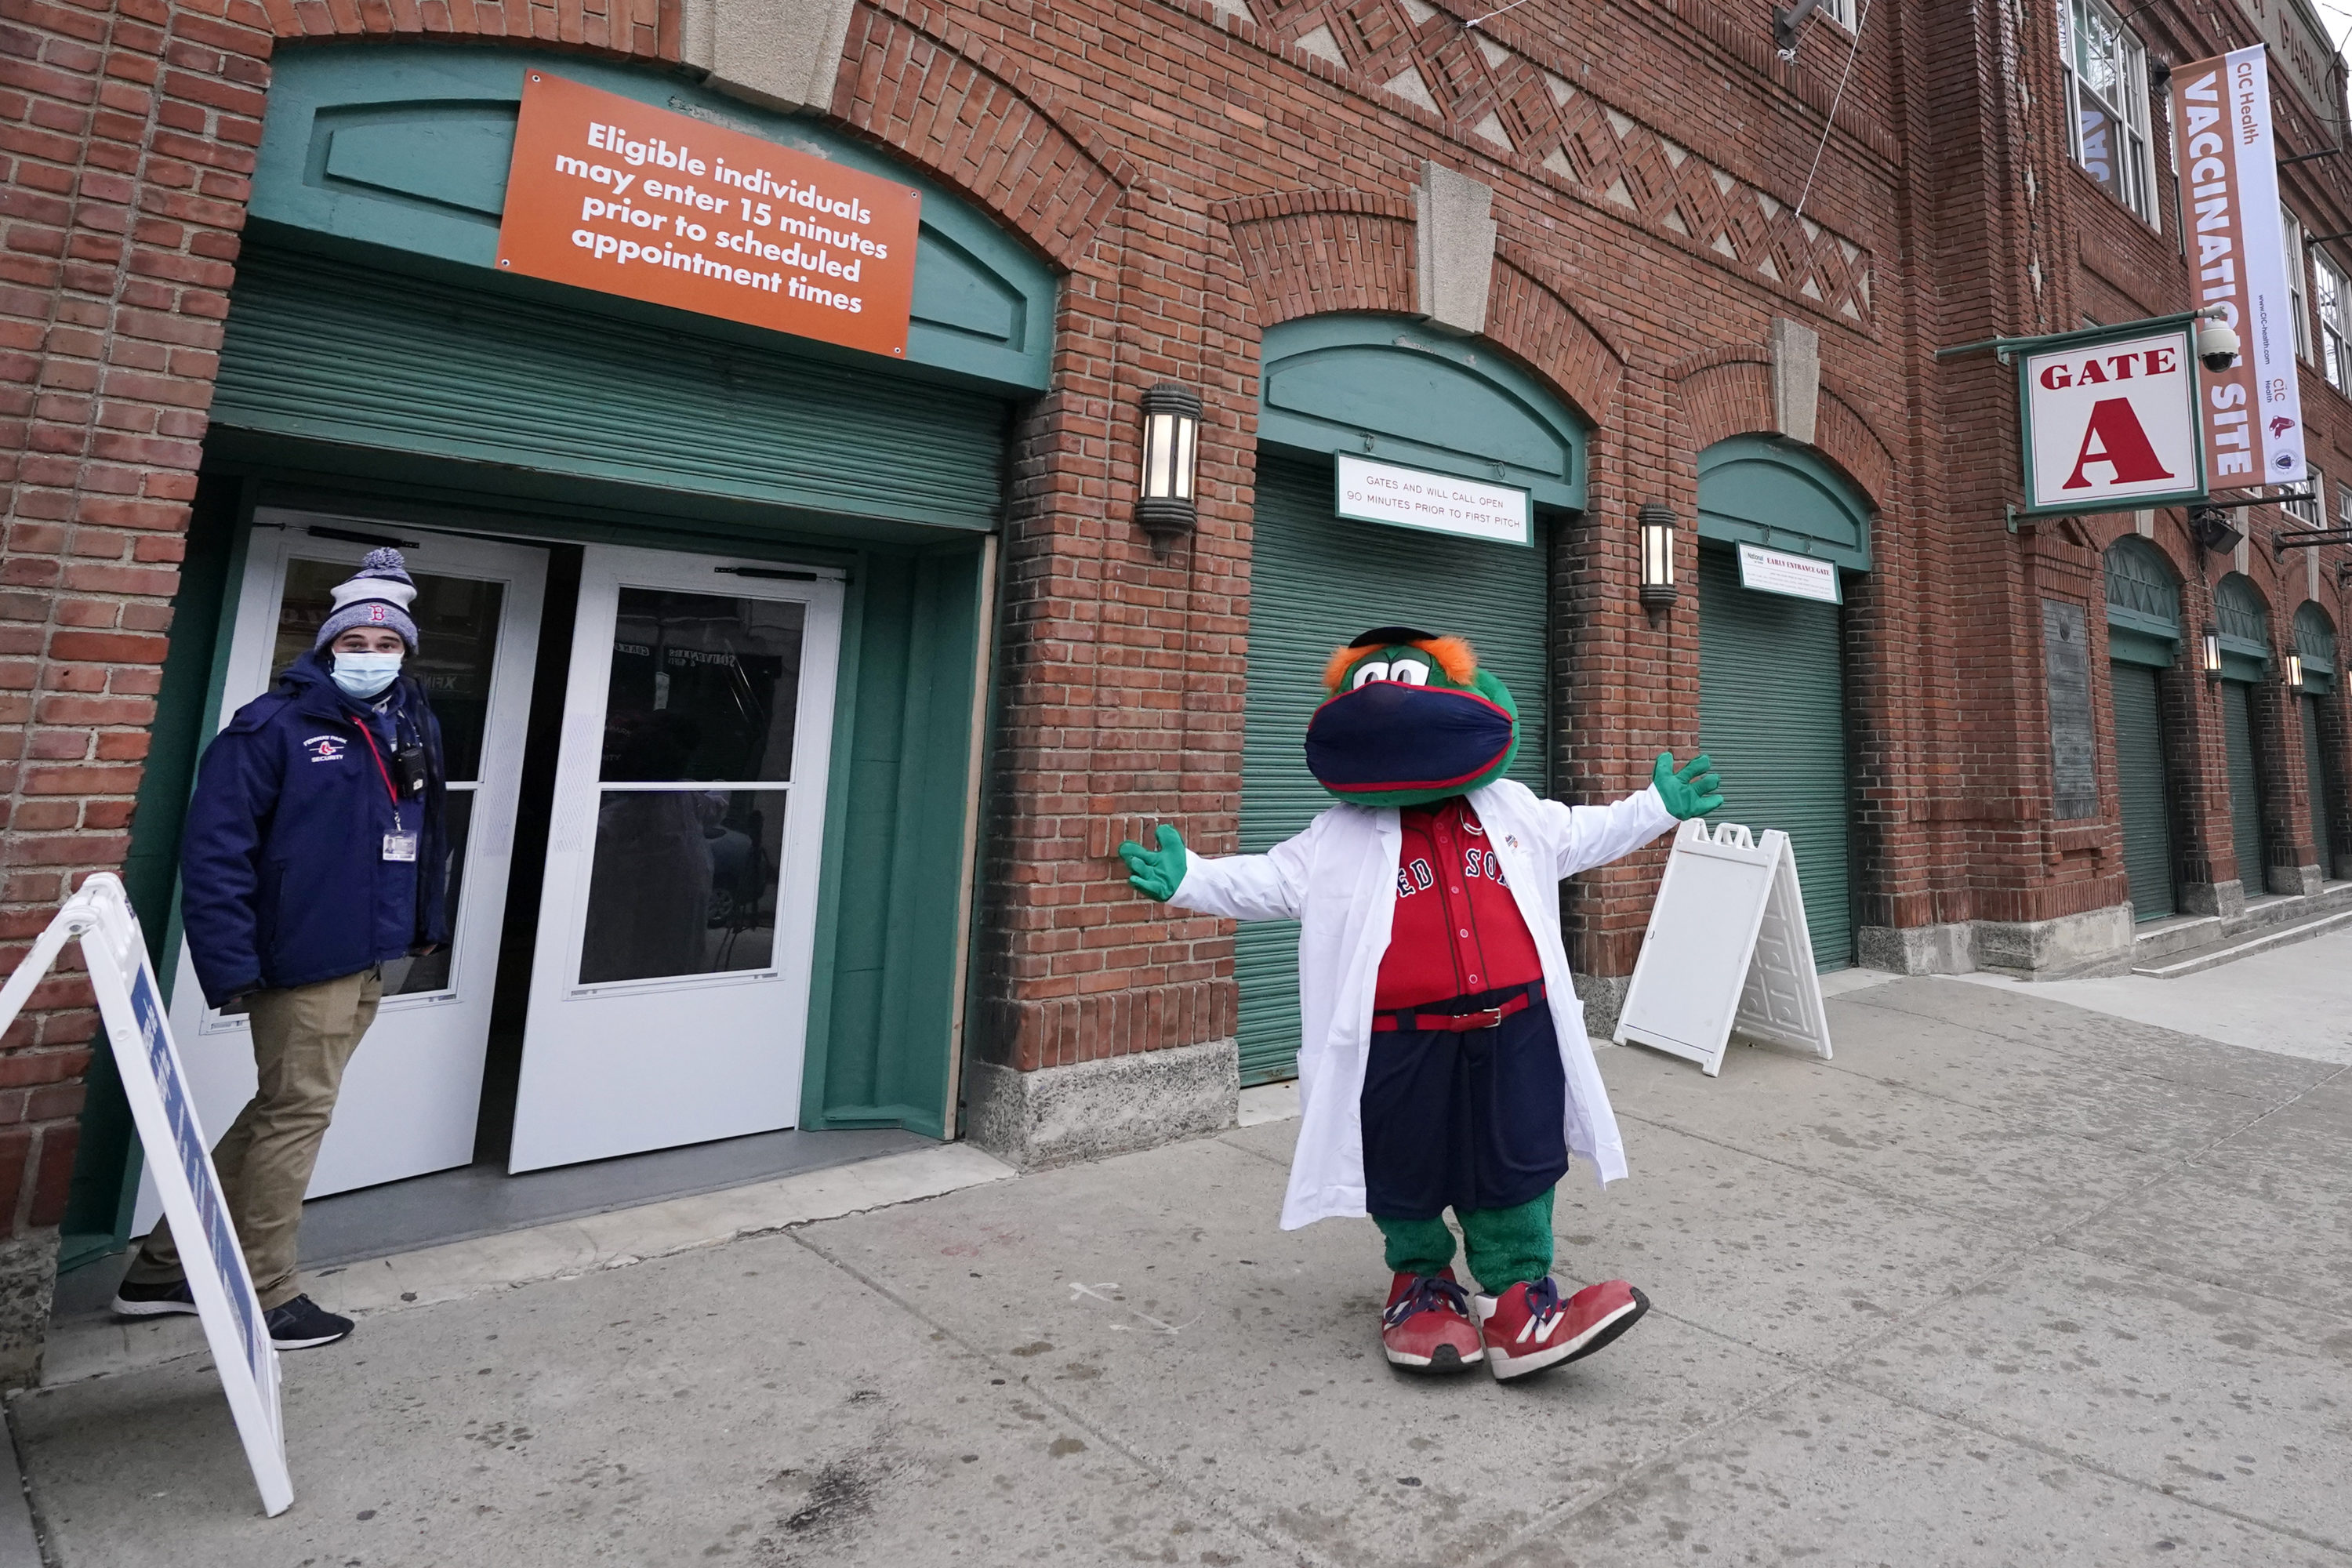 Boston Red Sox mascot, Wally the Green Monster, gestures while dressed in a medical white coat outside Fenway Park, Monday Feb. 1, 2021, in Boston. Fenway Park is one of several large COVID-19 vaccination sites in the Boston area. (Elise Amendola/AP)